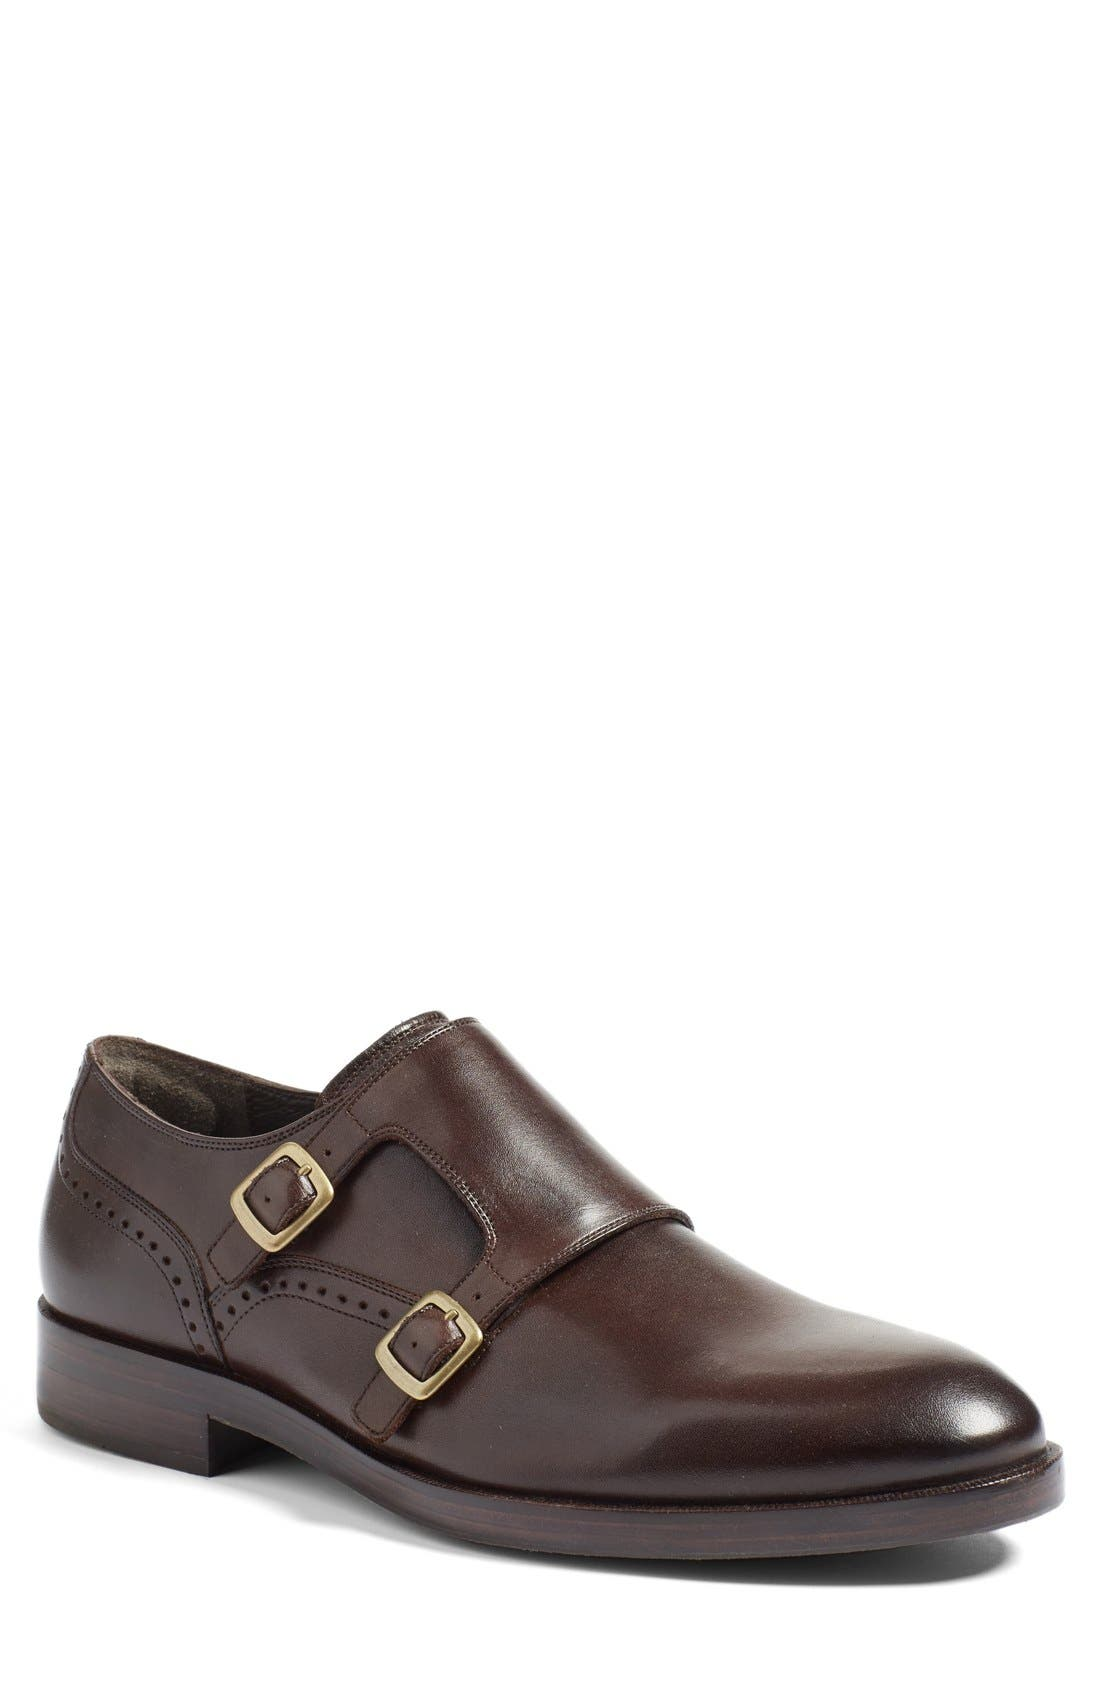 'Harrison' Double Monk Strap Shoe,                             Alternate thumbnail 5, color,                             205